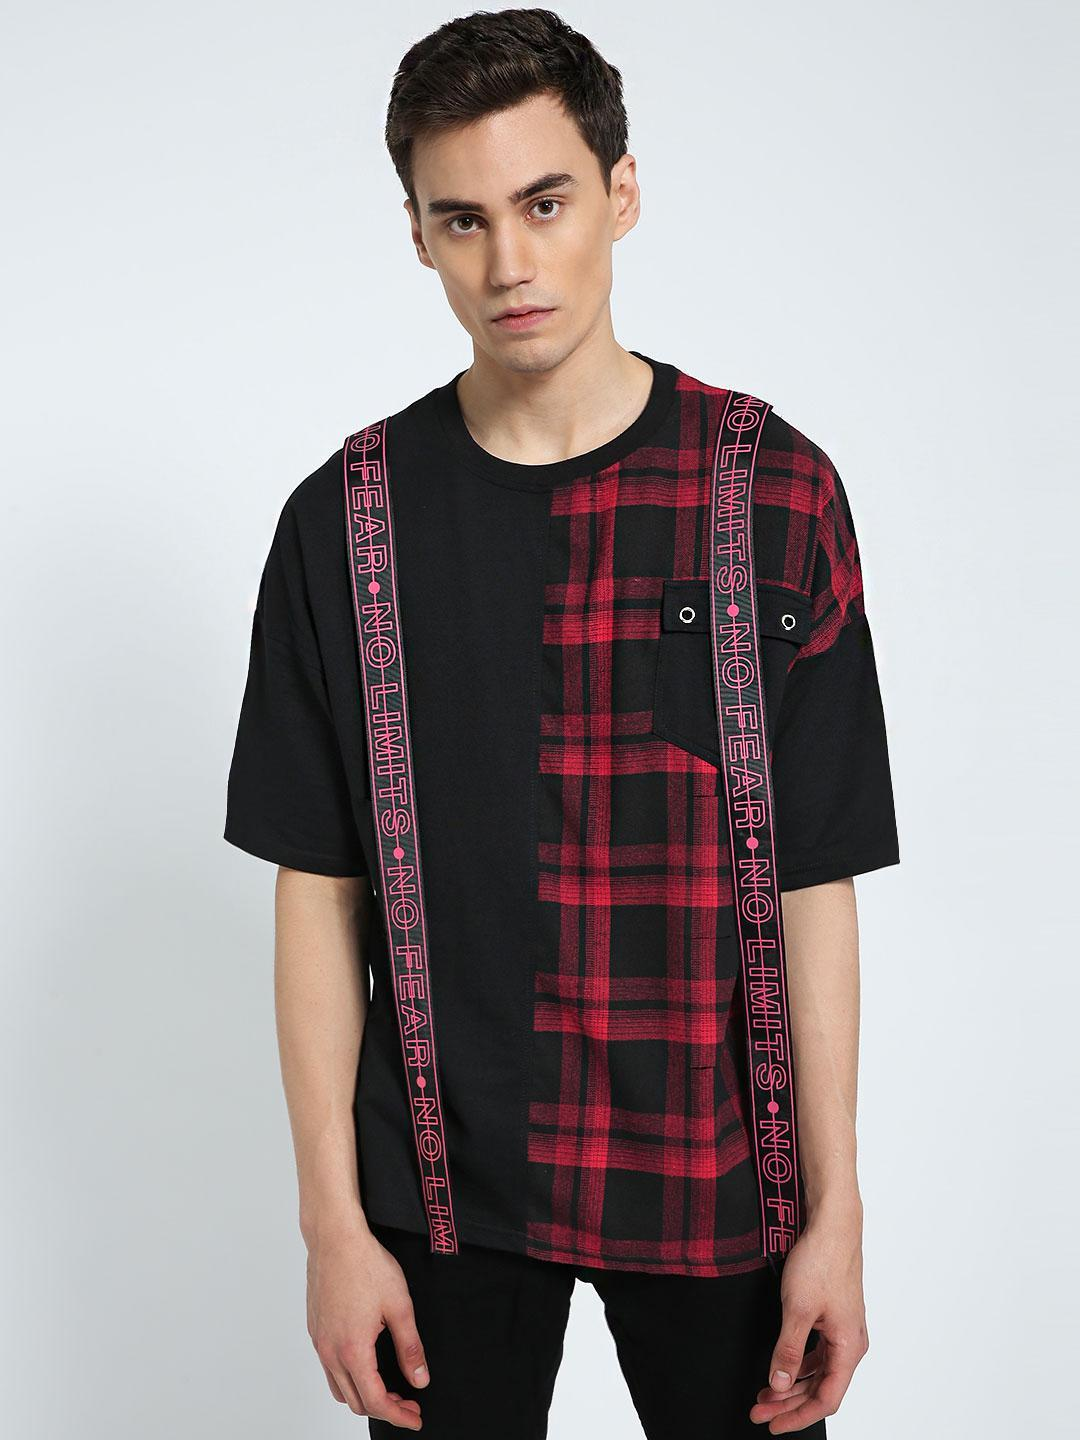 CHELSEA KING Multi Check Cut & Sew Extended Tape T-Shirt 1